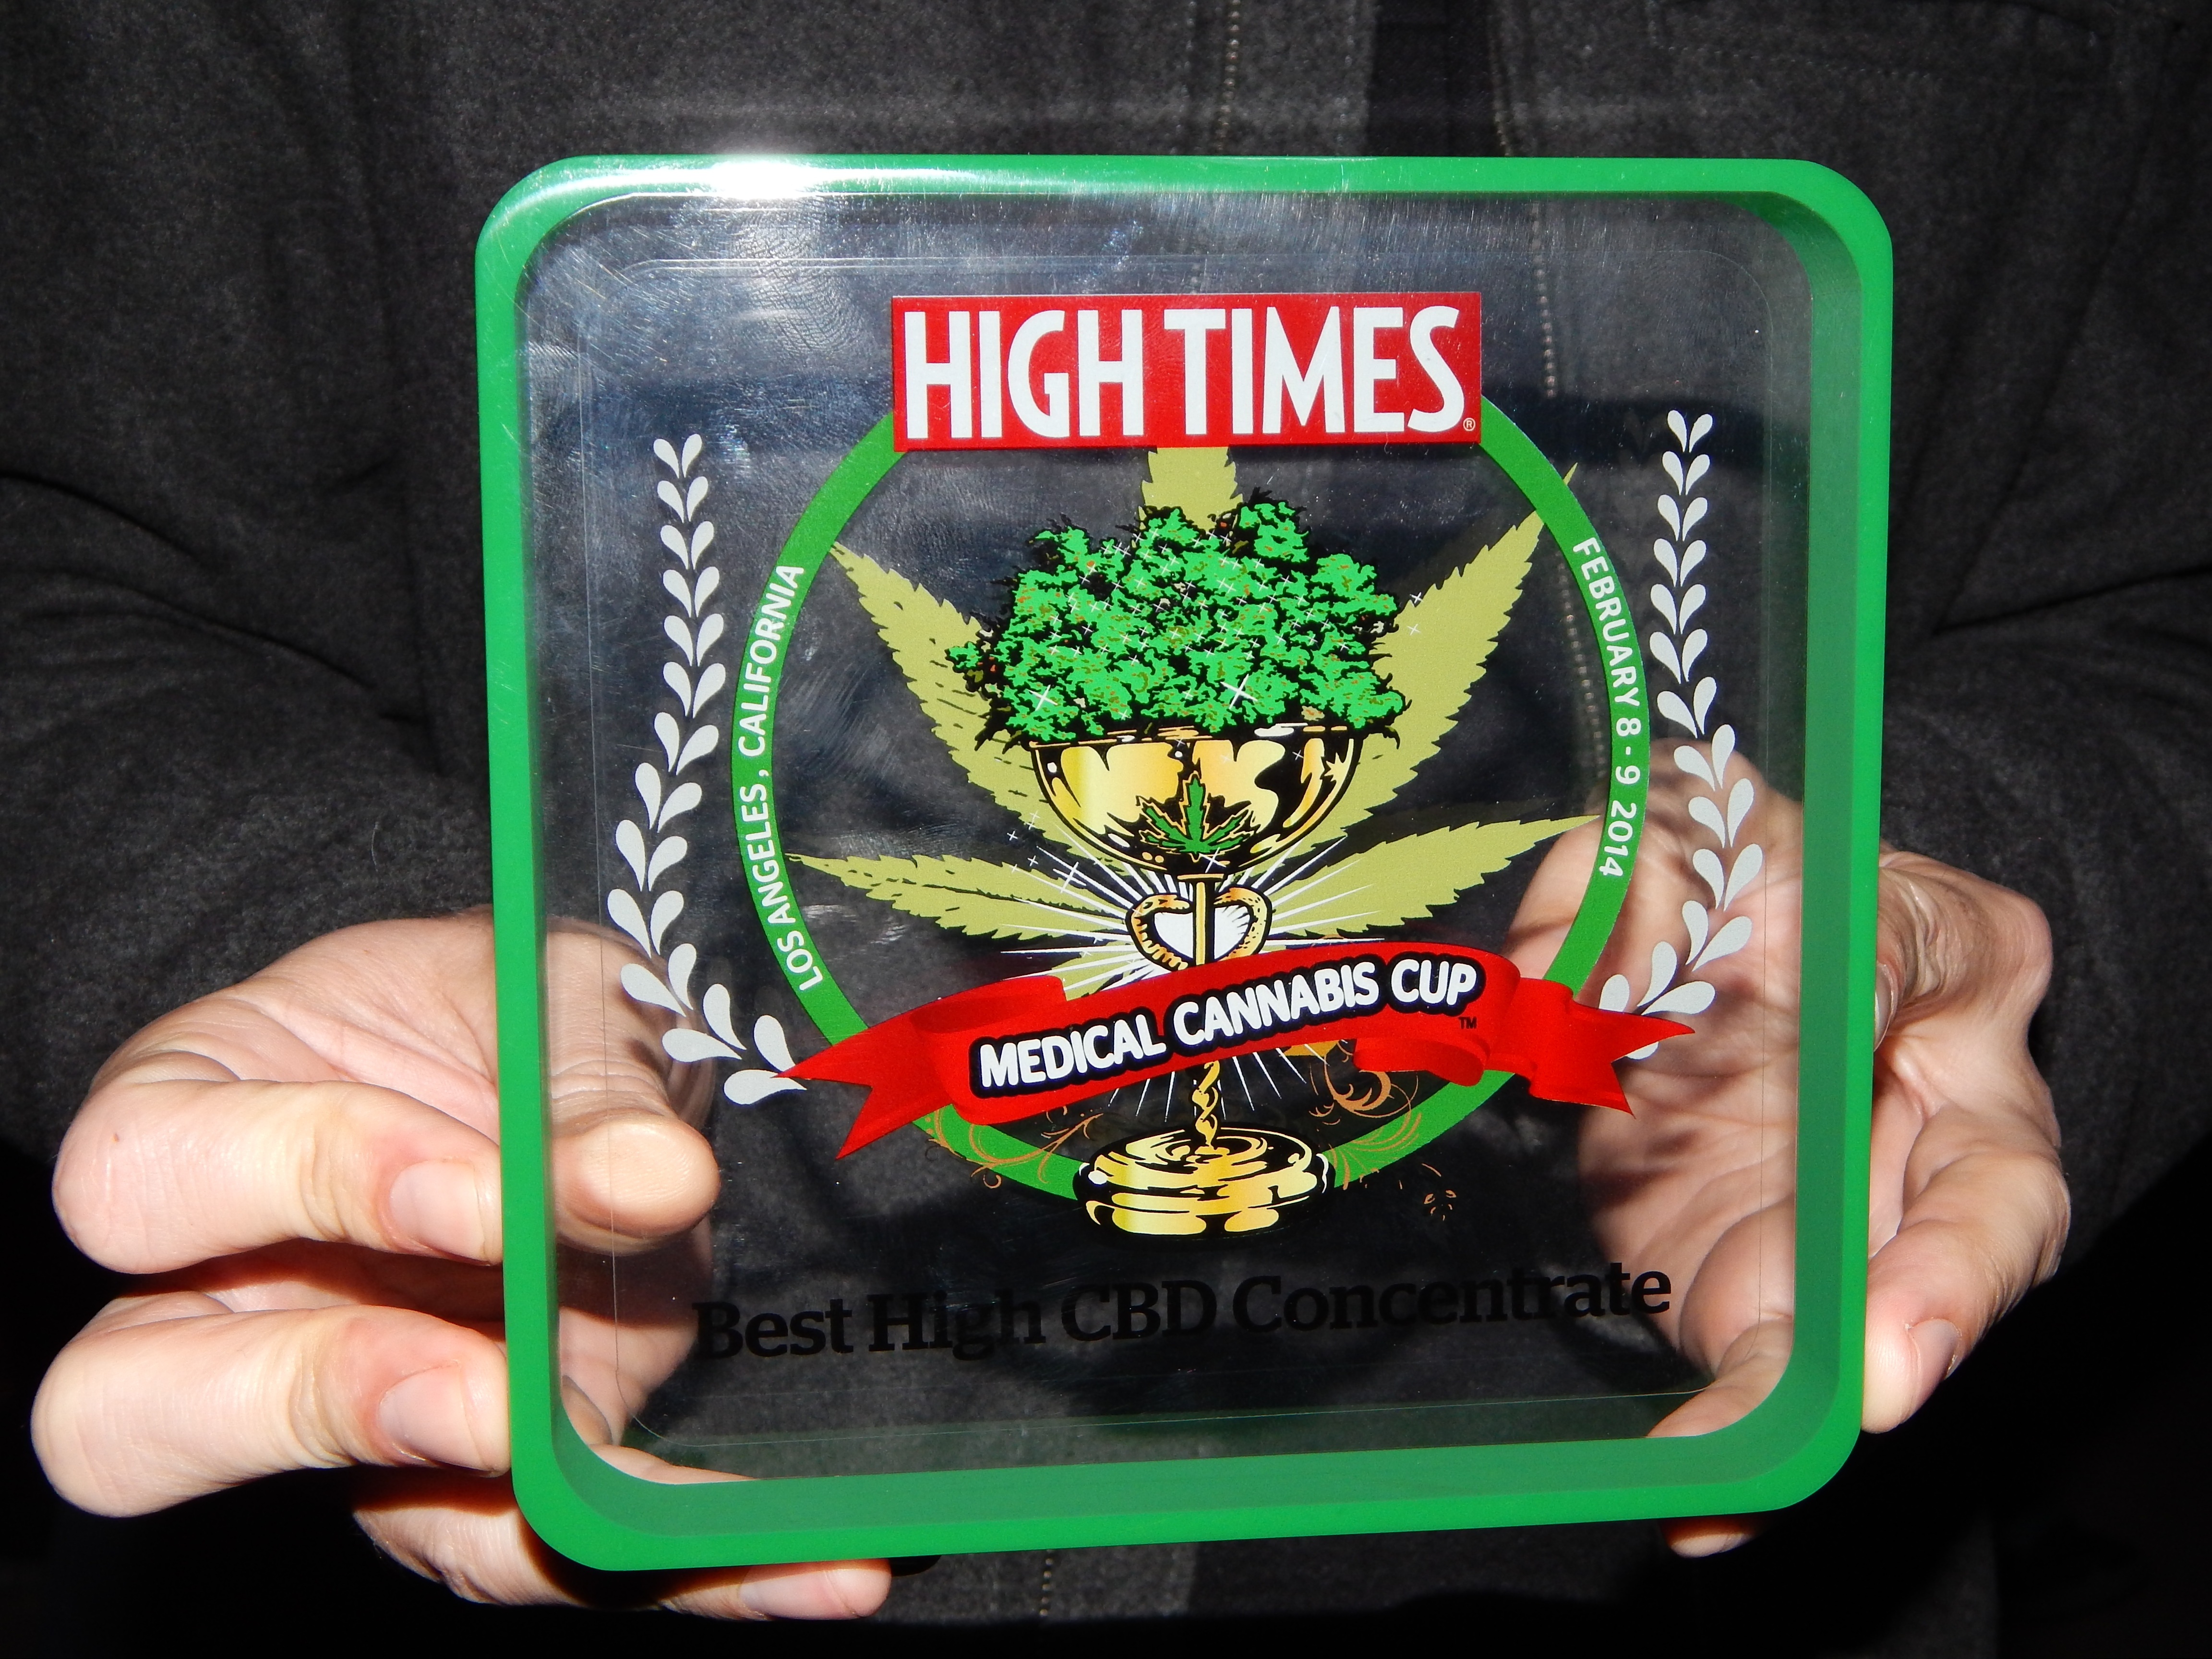 CBD Simple - 3rd Consecutive Cannabis Cup Award for High CBD Concentrate